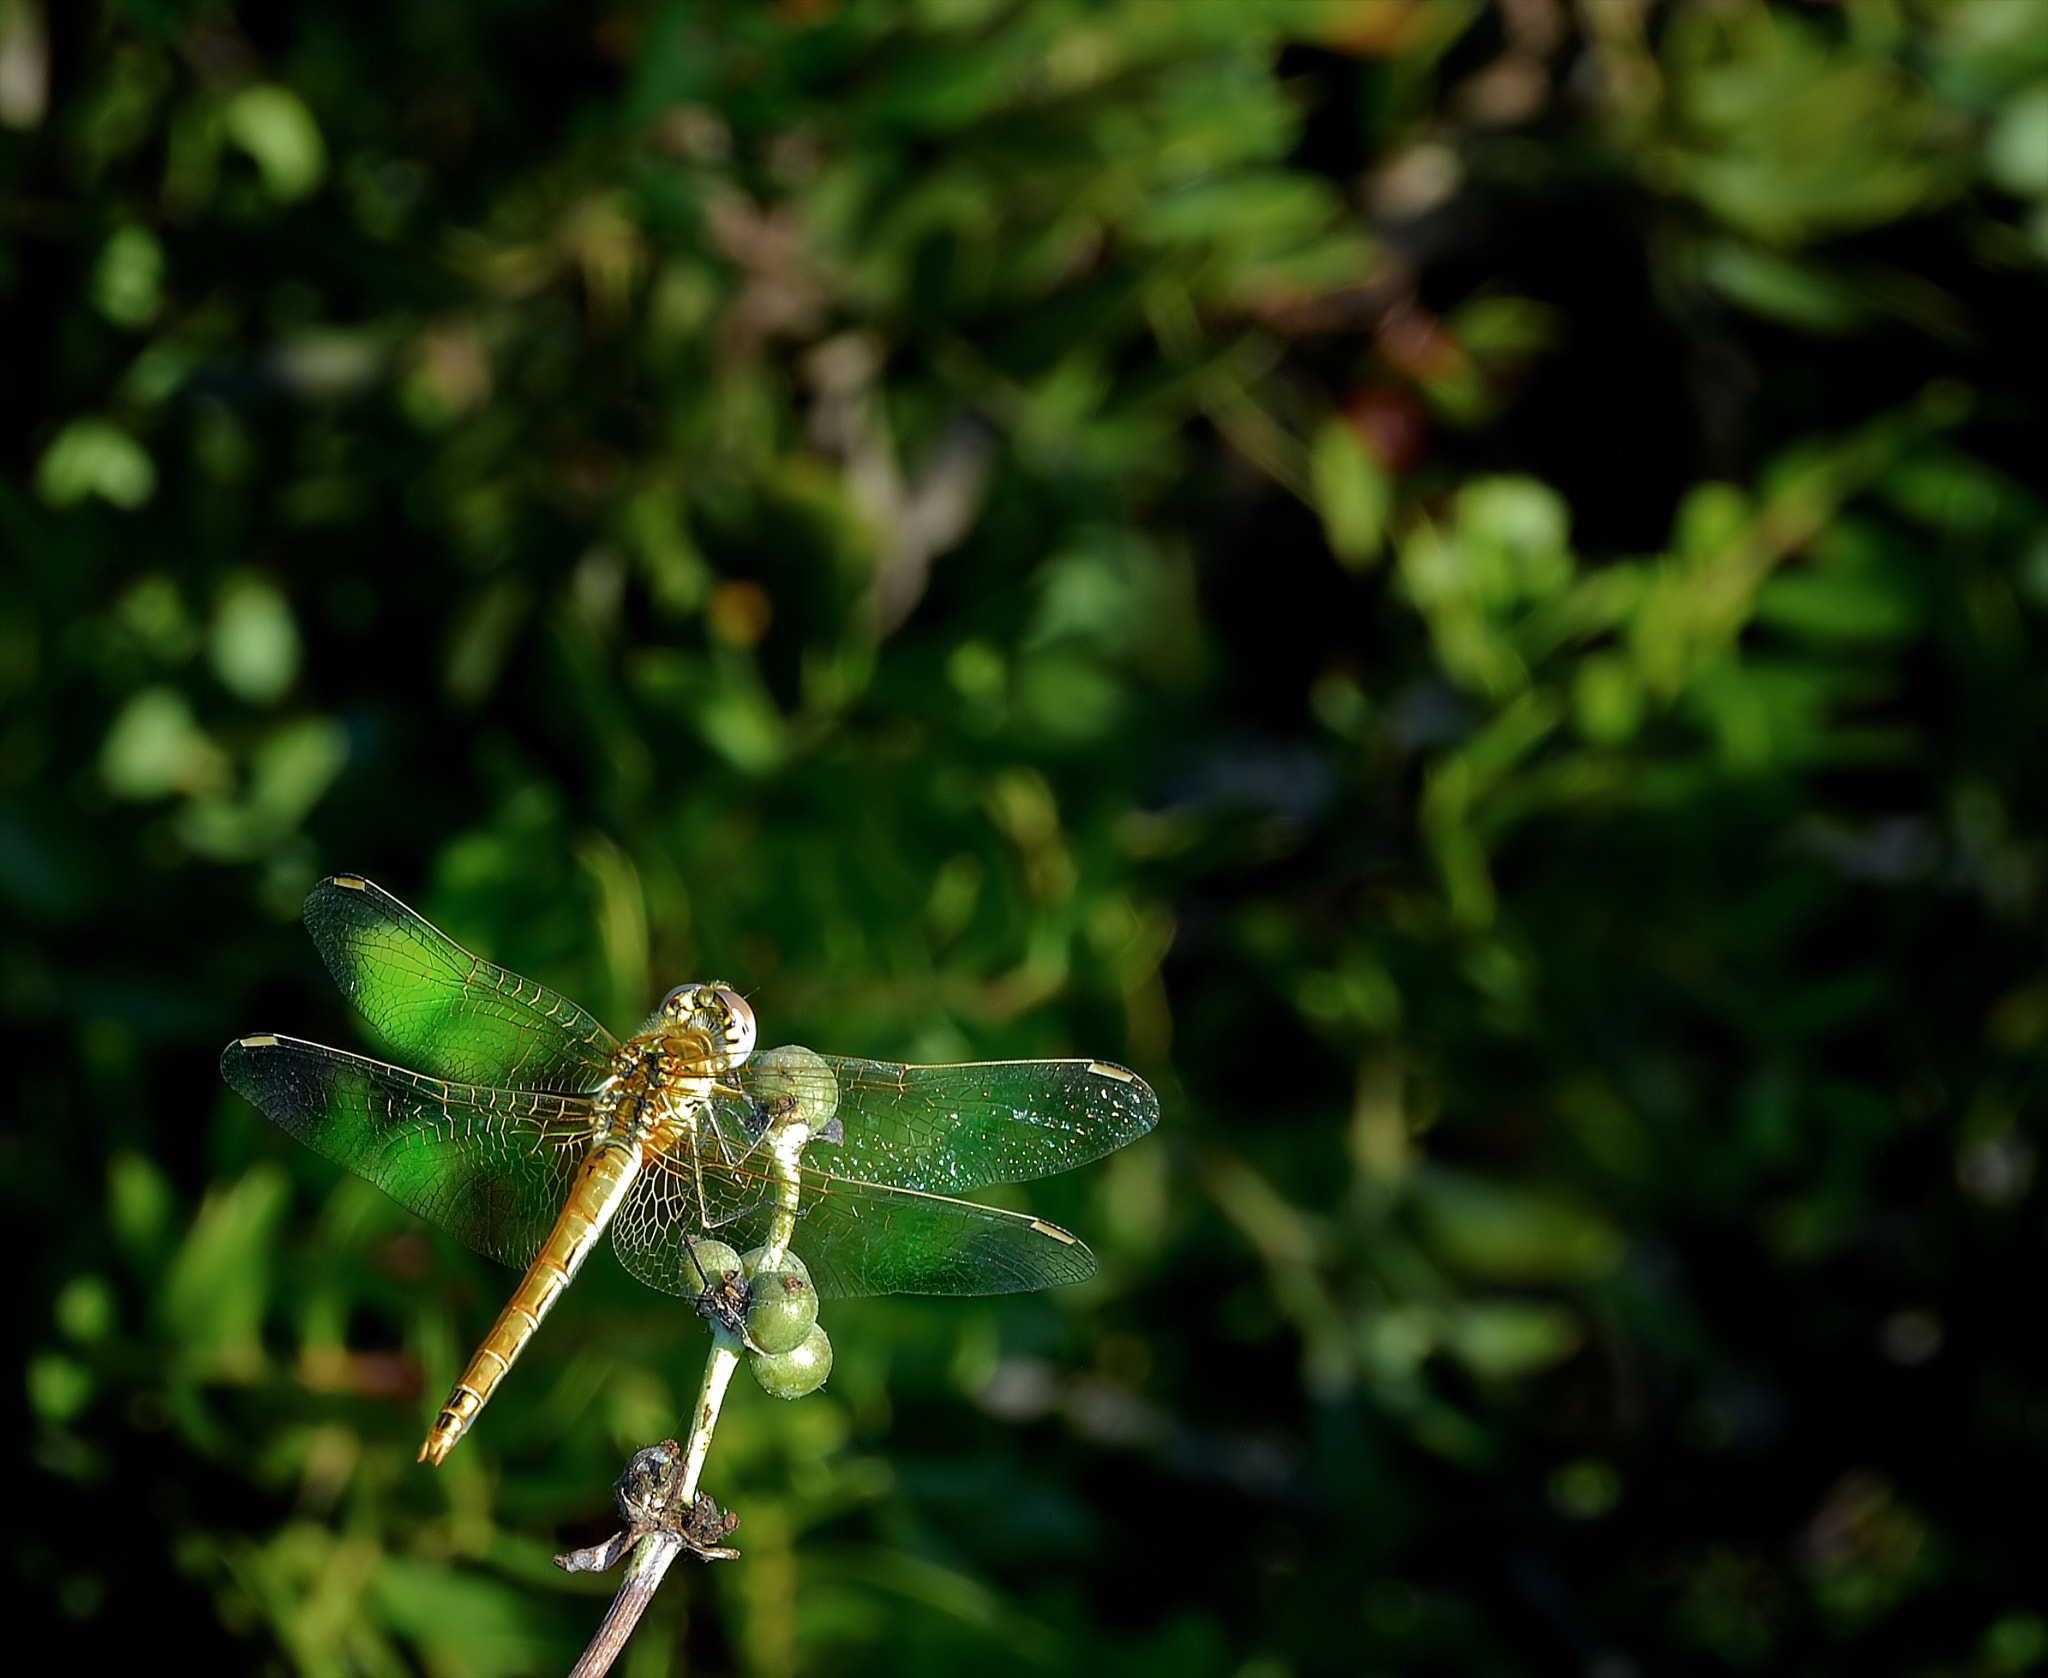 Photograph Dragonfly 2 by John Barker on 500px